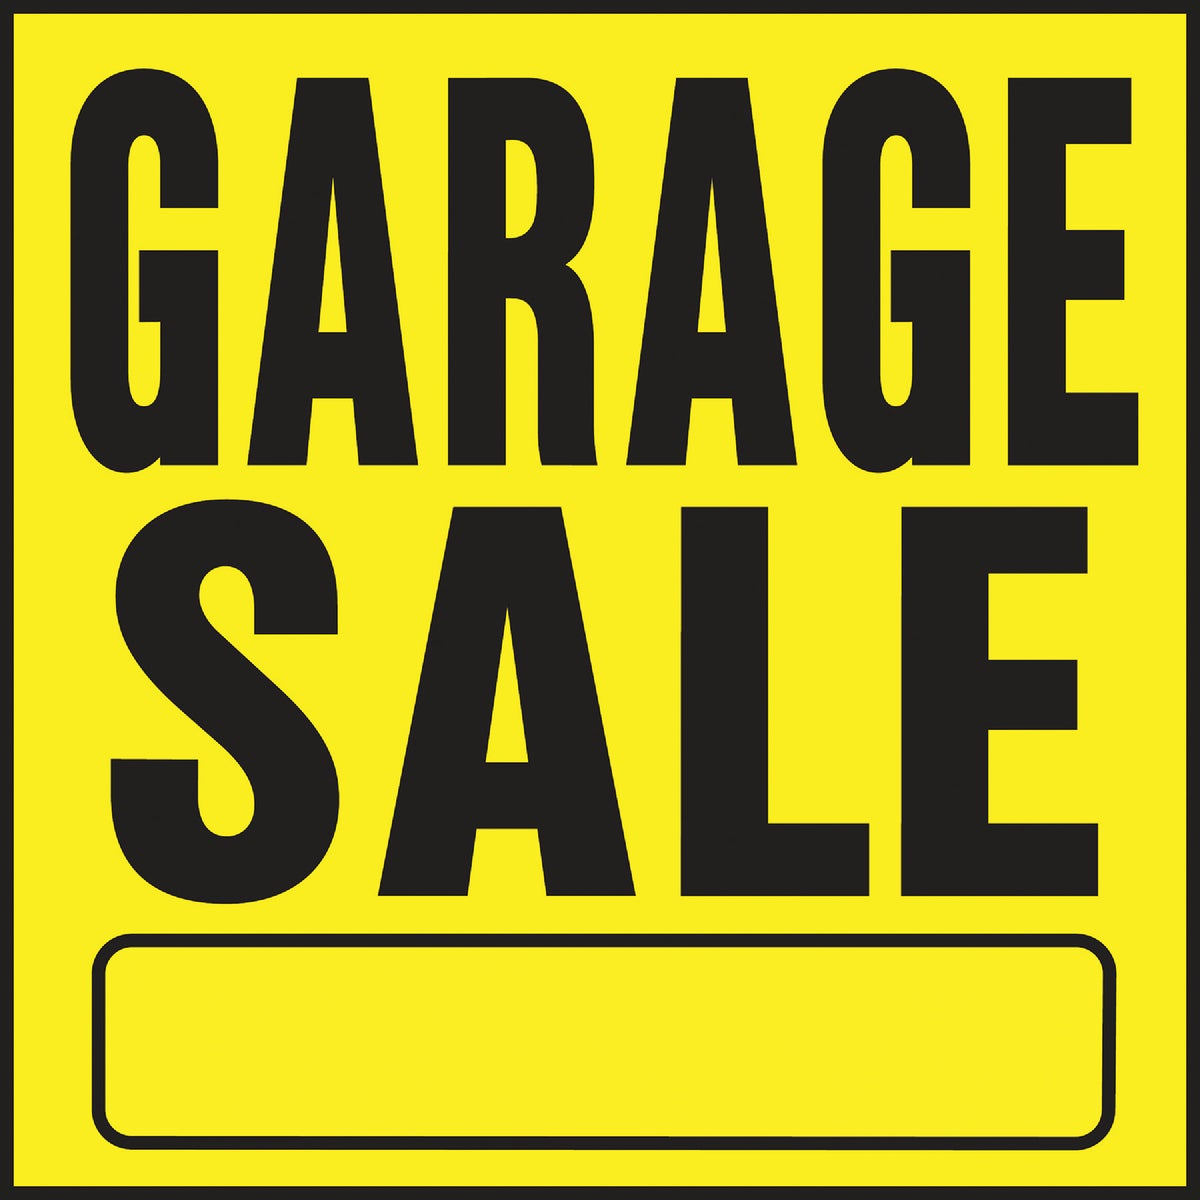 11X11 GARAGE SALE SIGN - YP-3 by Hy Ko Prods Co